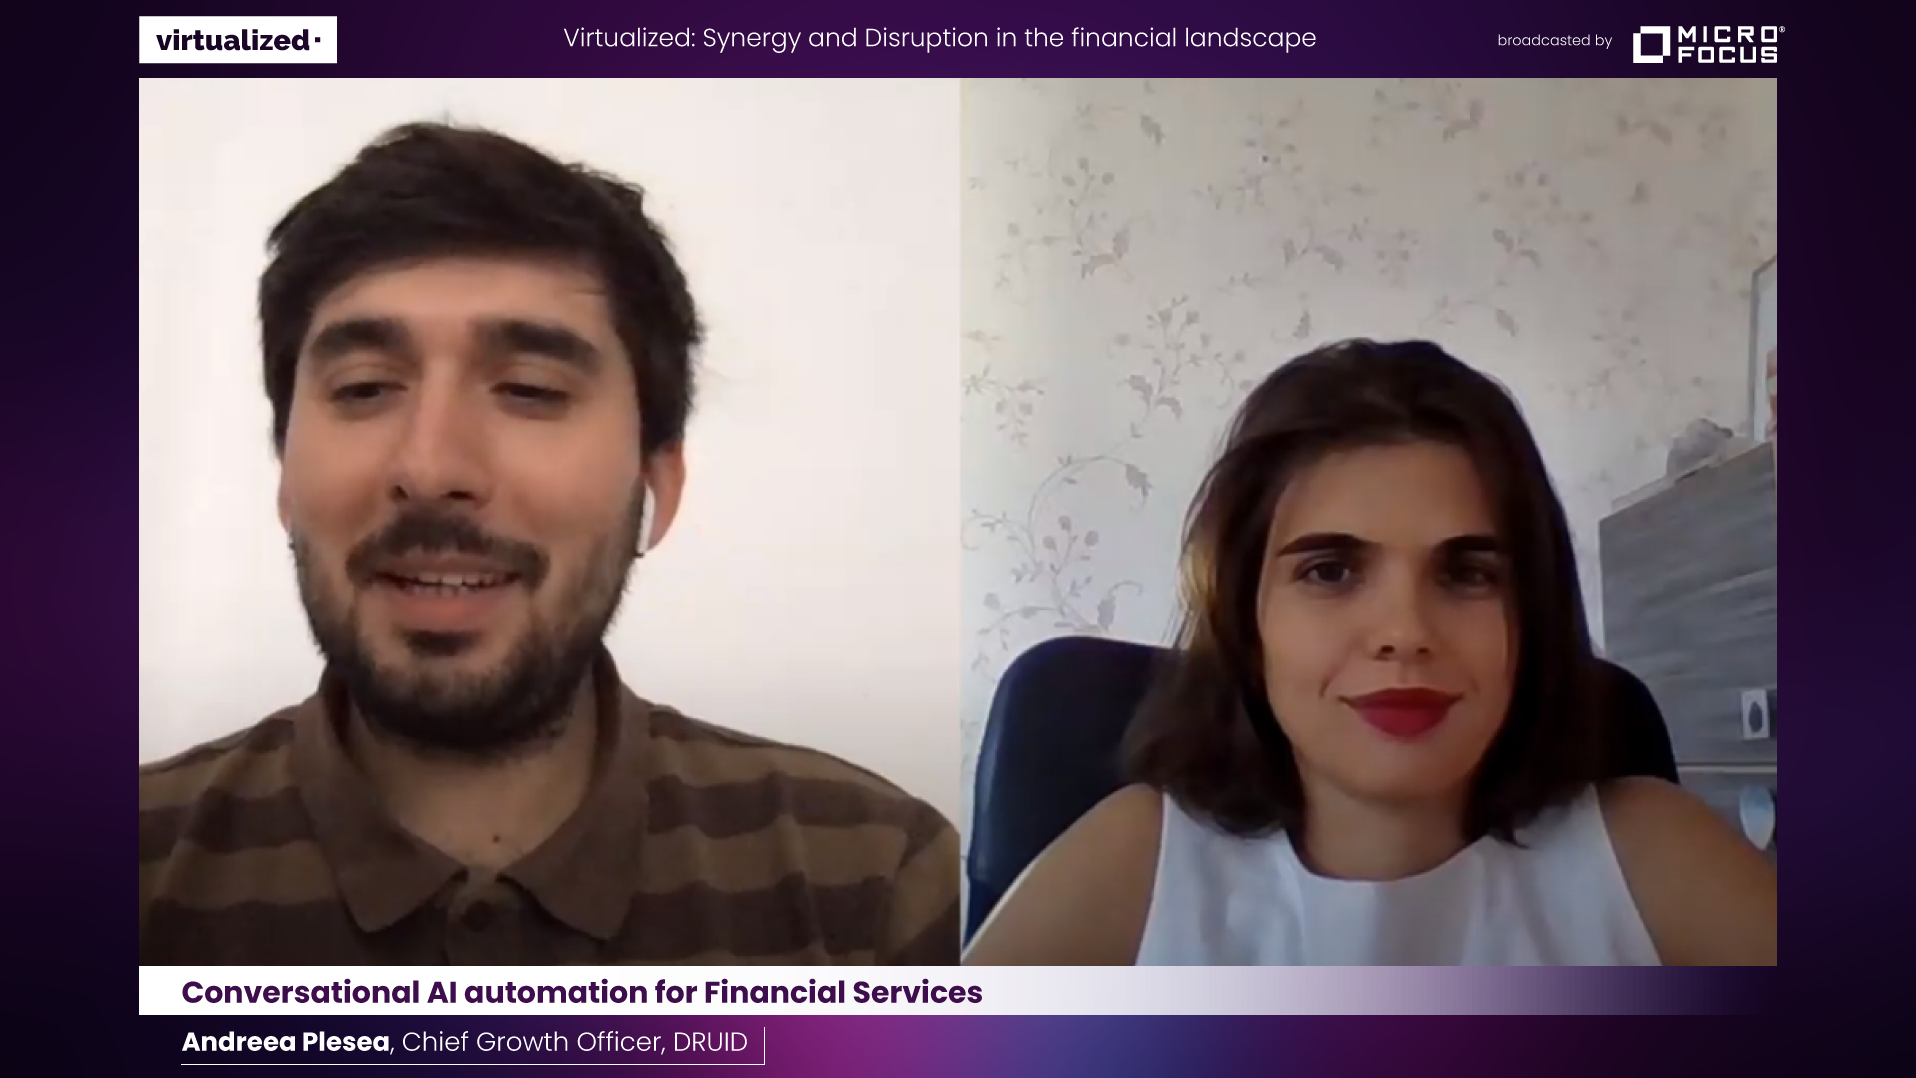 Conversational AI automation for Financial Services